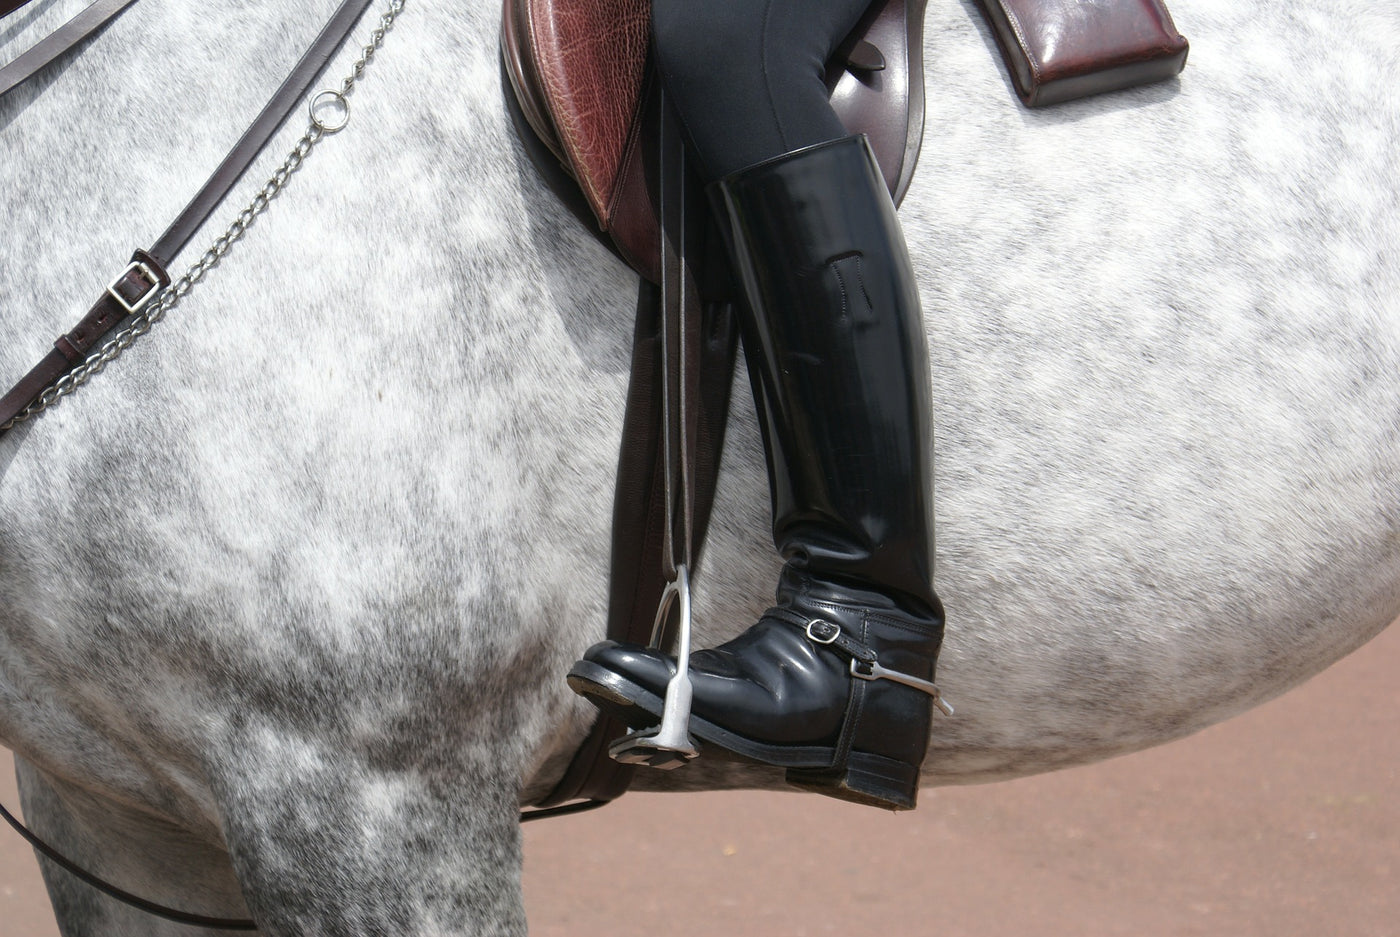 Keeping your heels down when riding